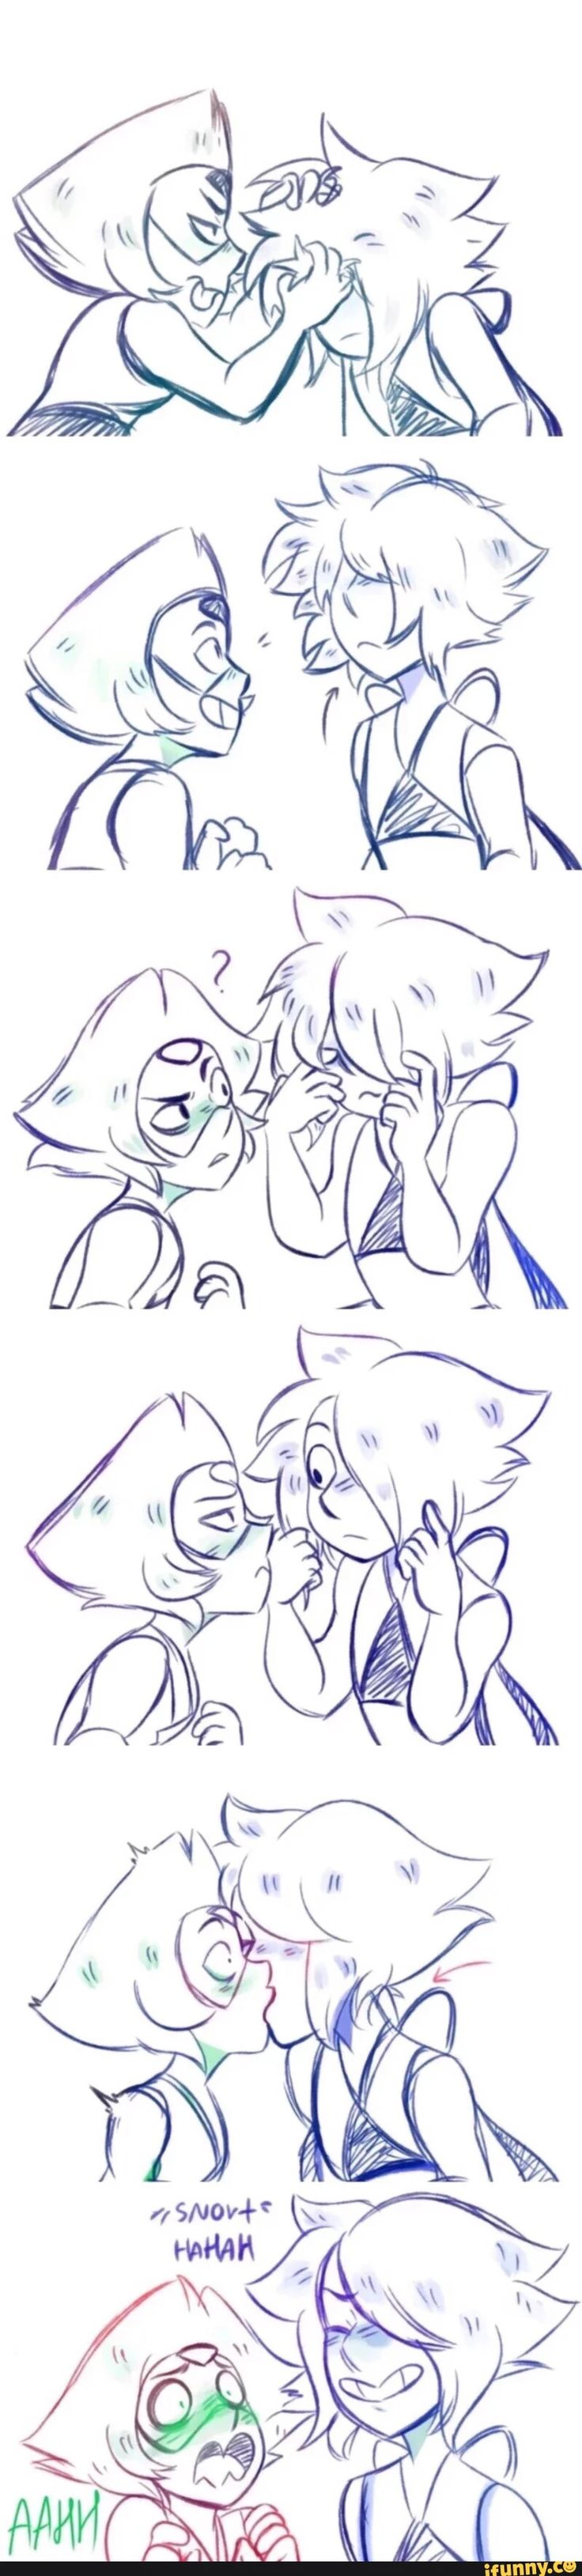 Sooooo cute!!! Artist: ??? (Comment if you know) Peridot Lapis